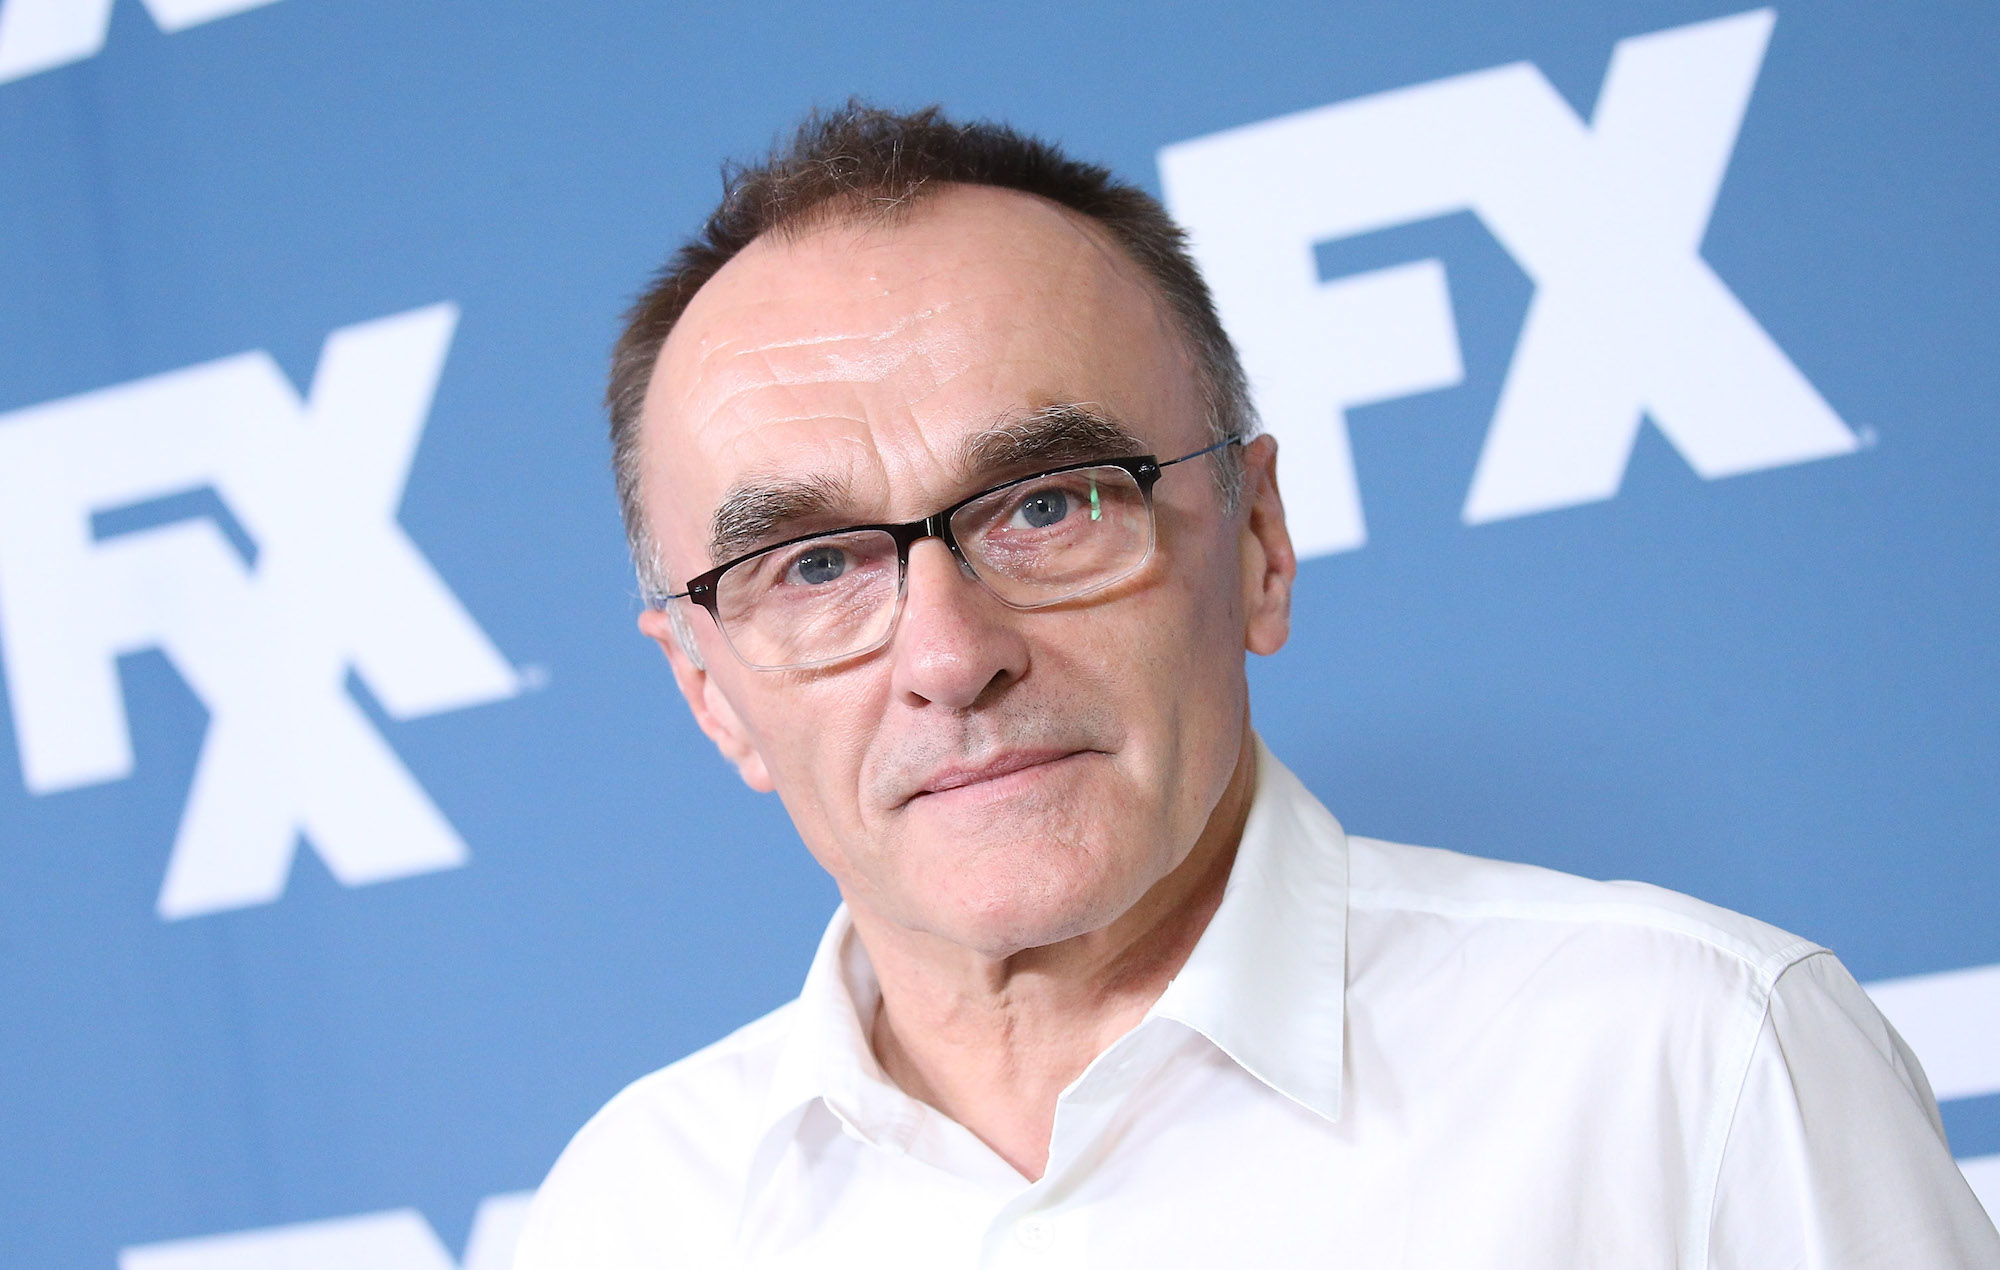 'No Time to Die' producer opens-up about Danny Boyle's exit